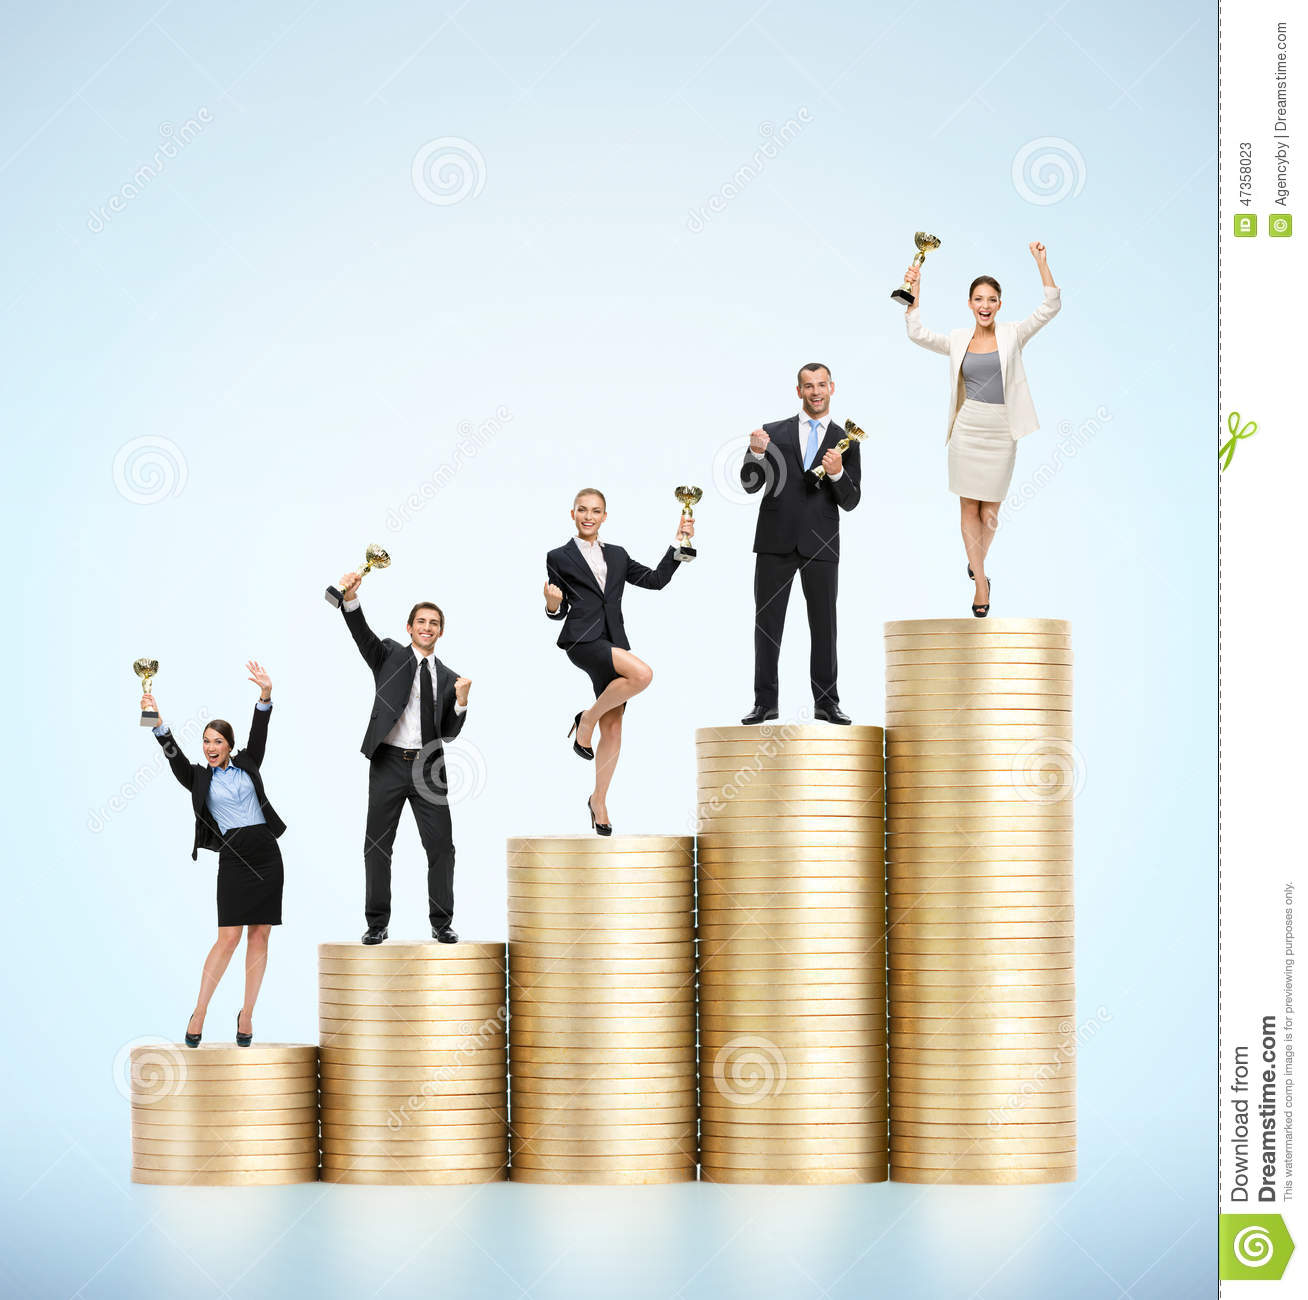 Business team with cups standing on the stairs of gold coins